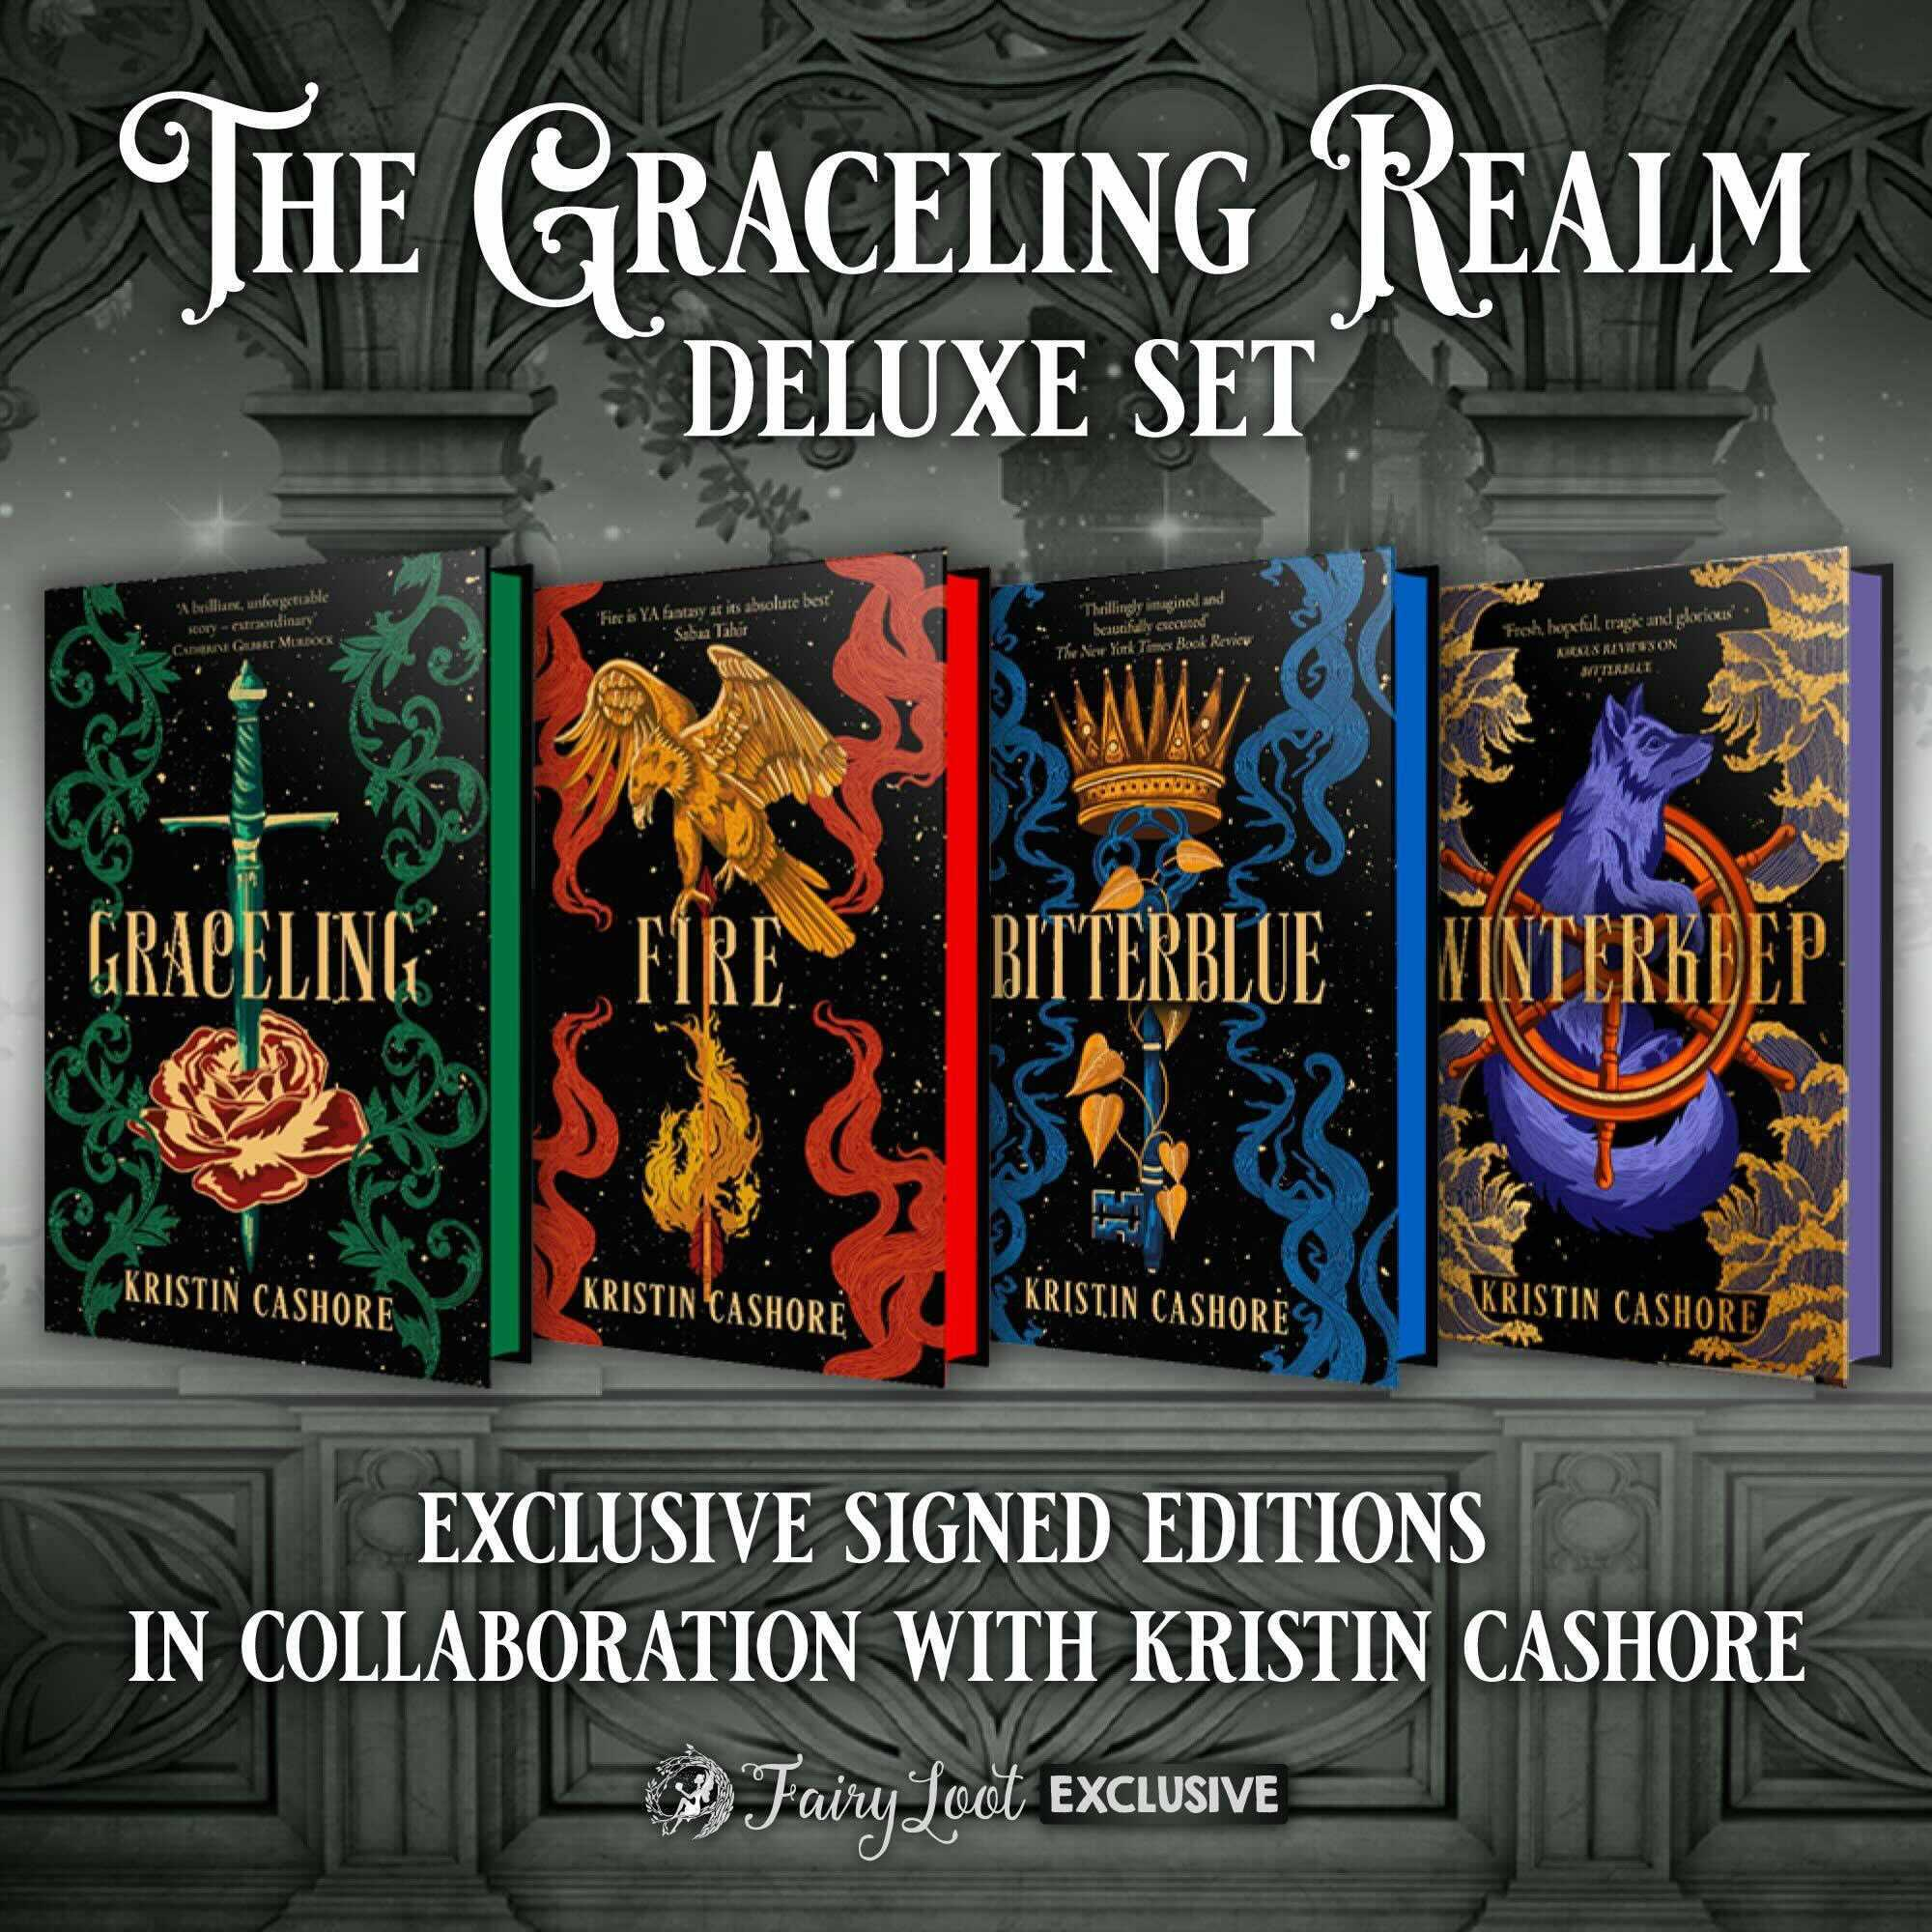 The Graceling Realm DELUXE SET